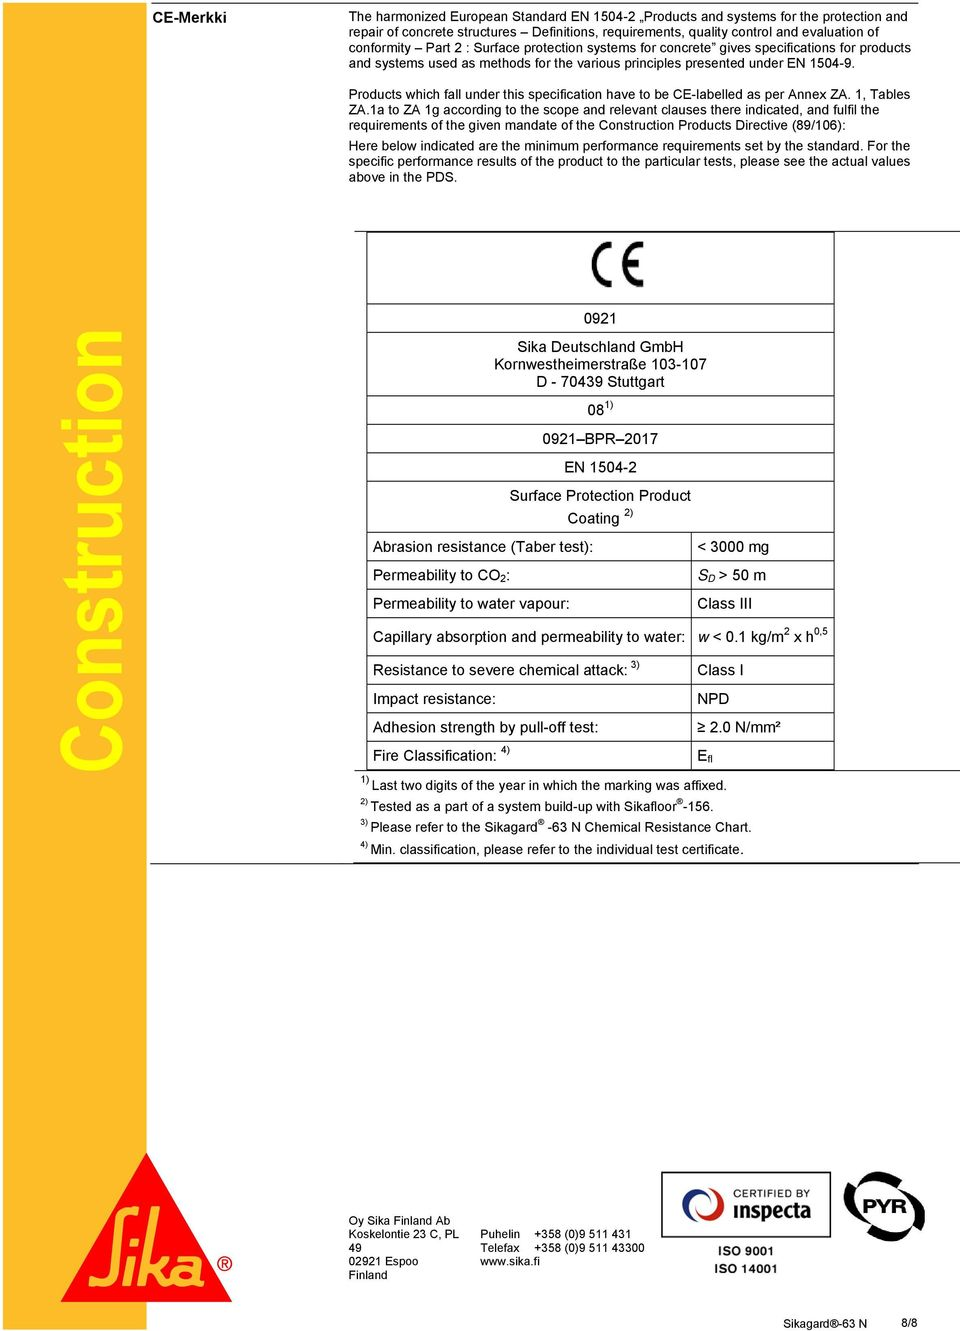 Products which fall under this specification have to be CE-labelled as per Annex ZA. 1, Tables ZA.